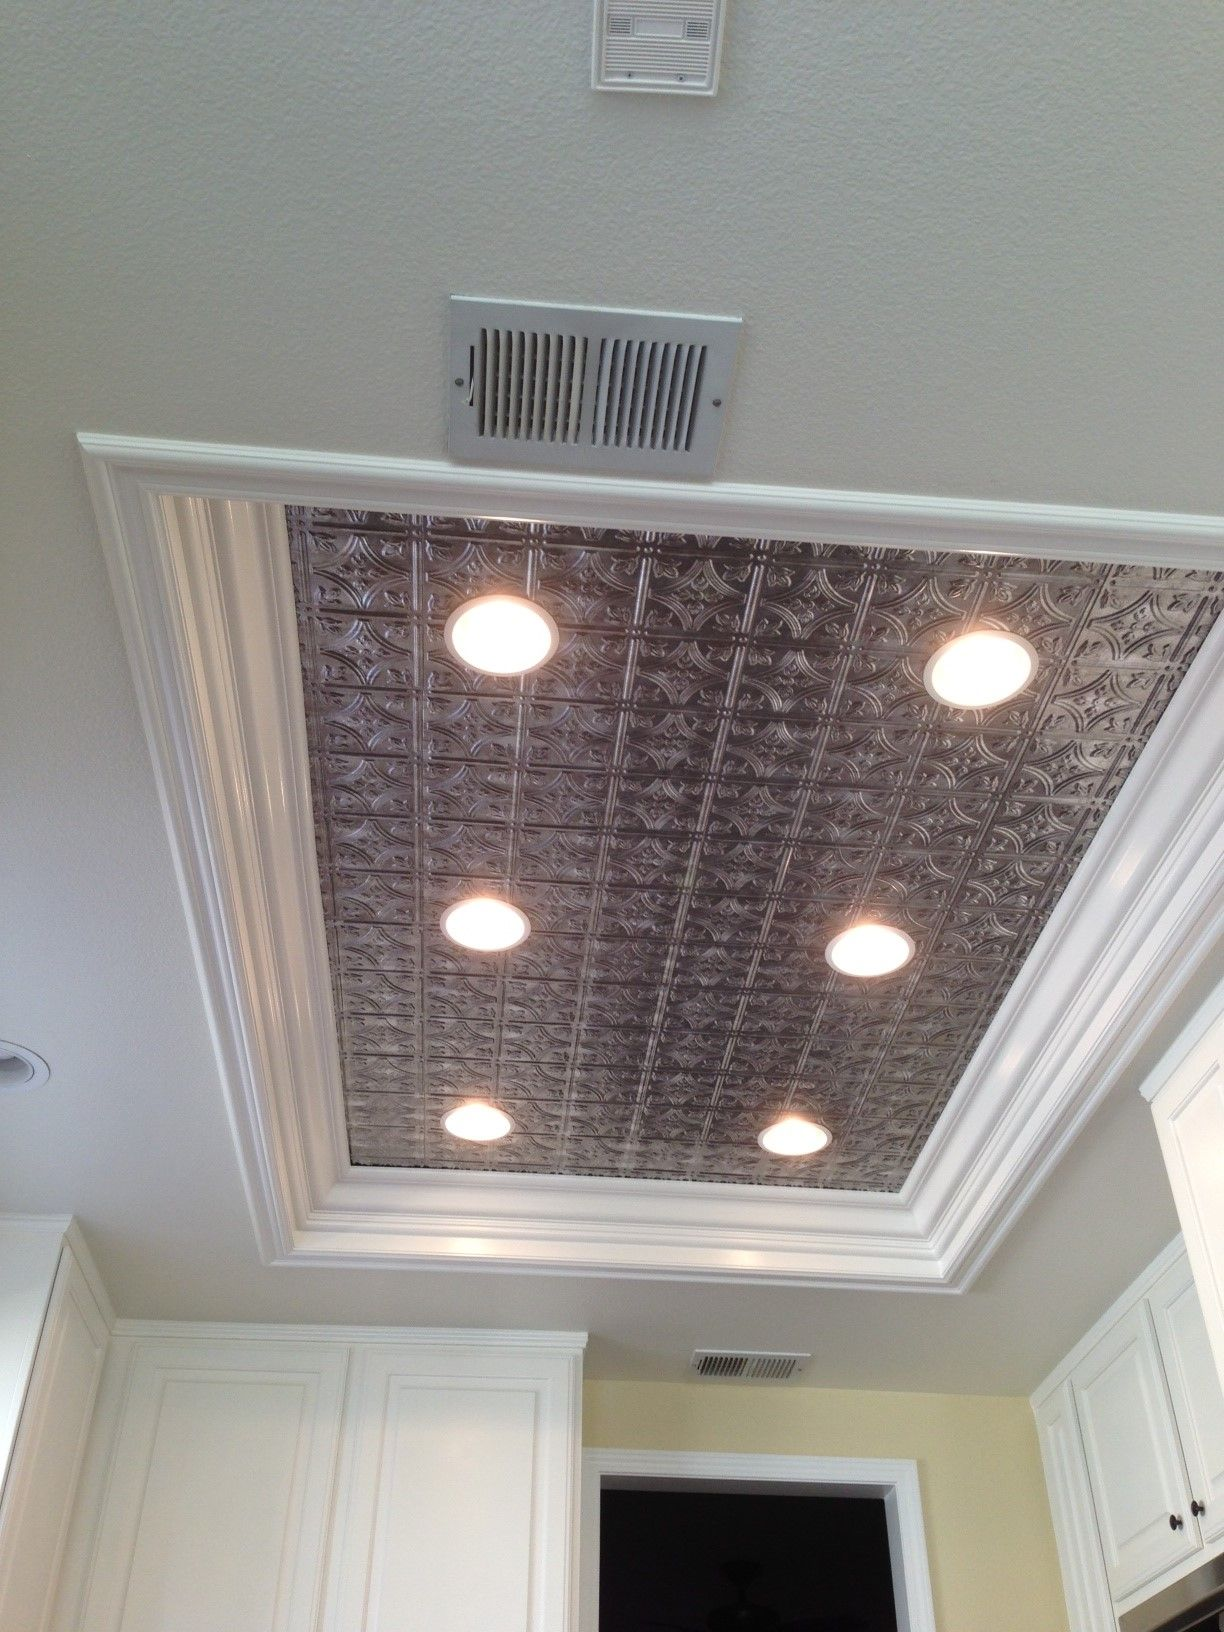 Recessed Kitchen Lighting Remodel Flourescent Light Box In Kitchen We Also Replaced The